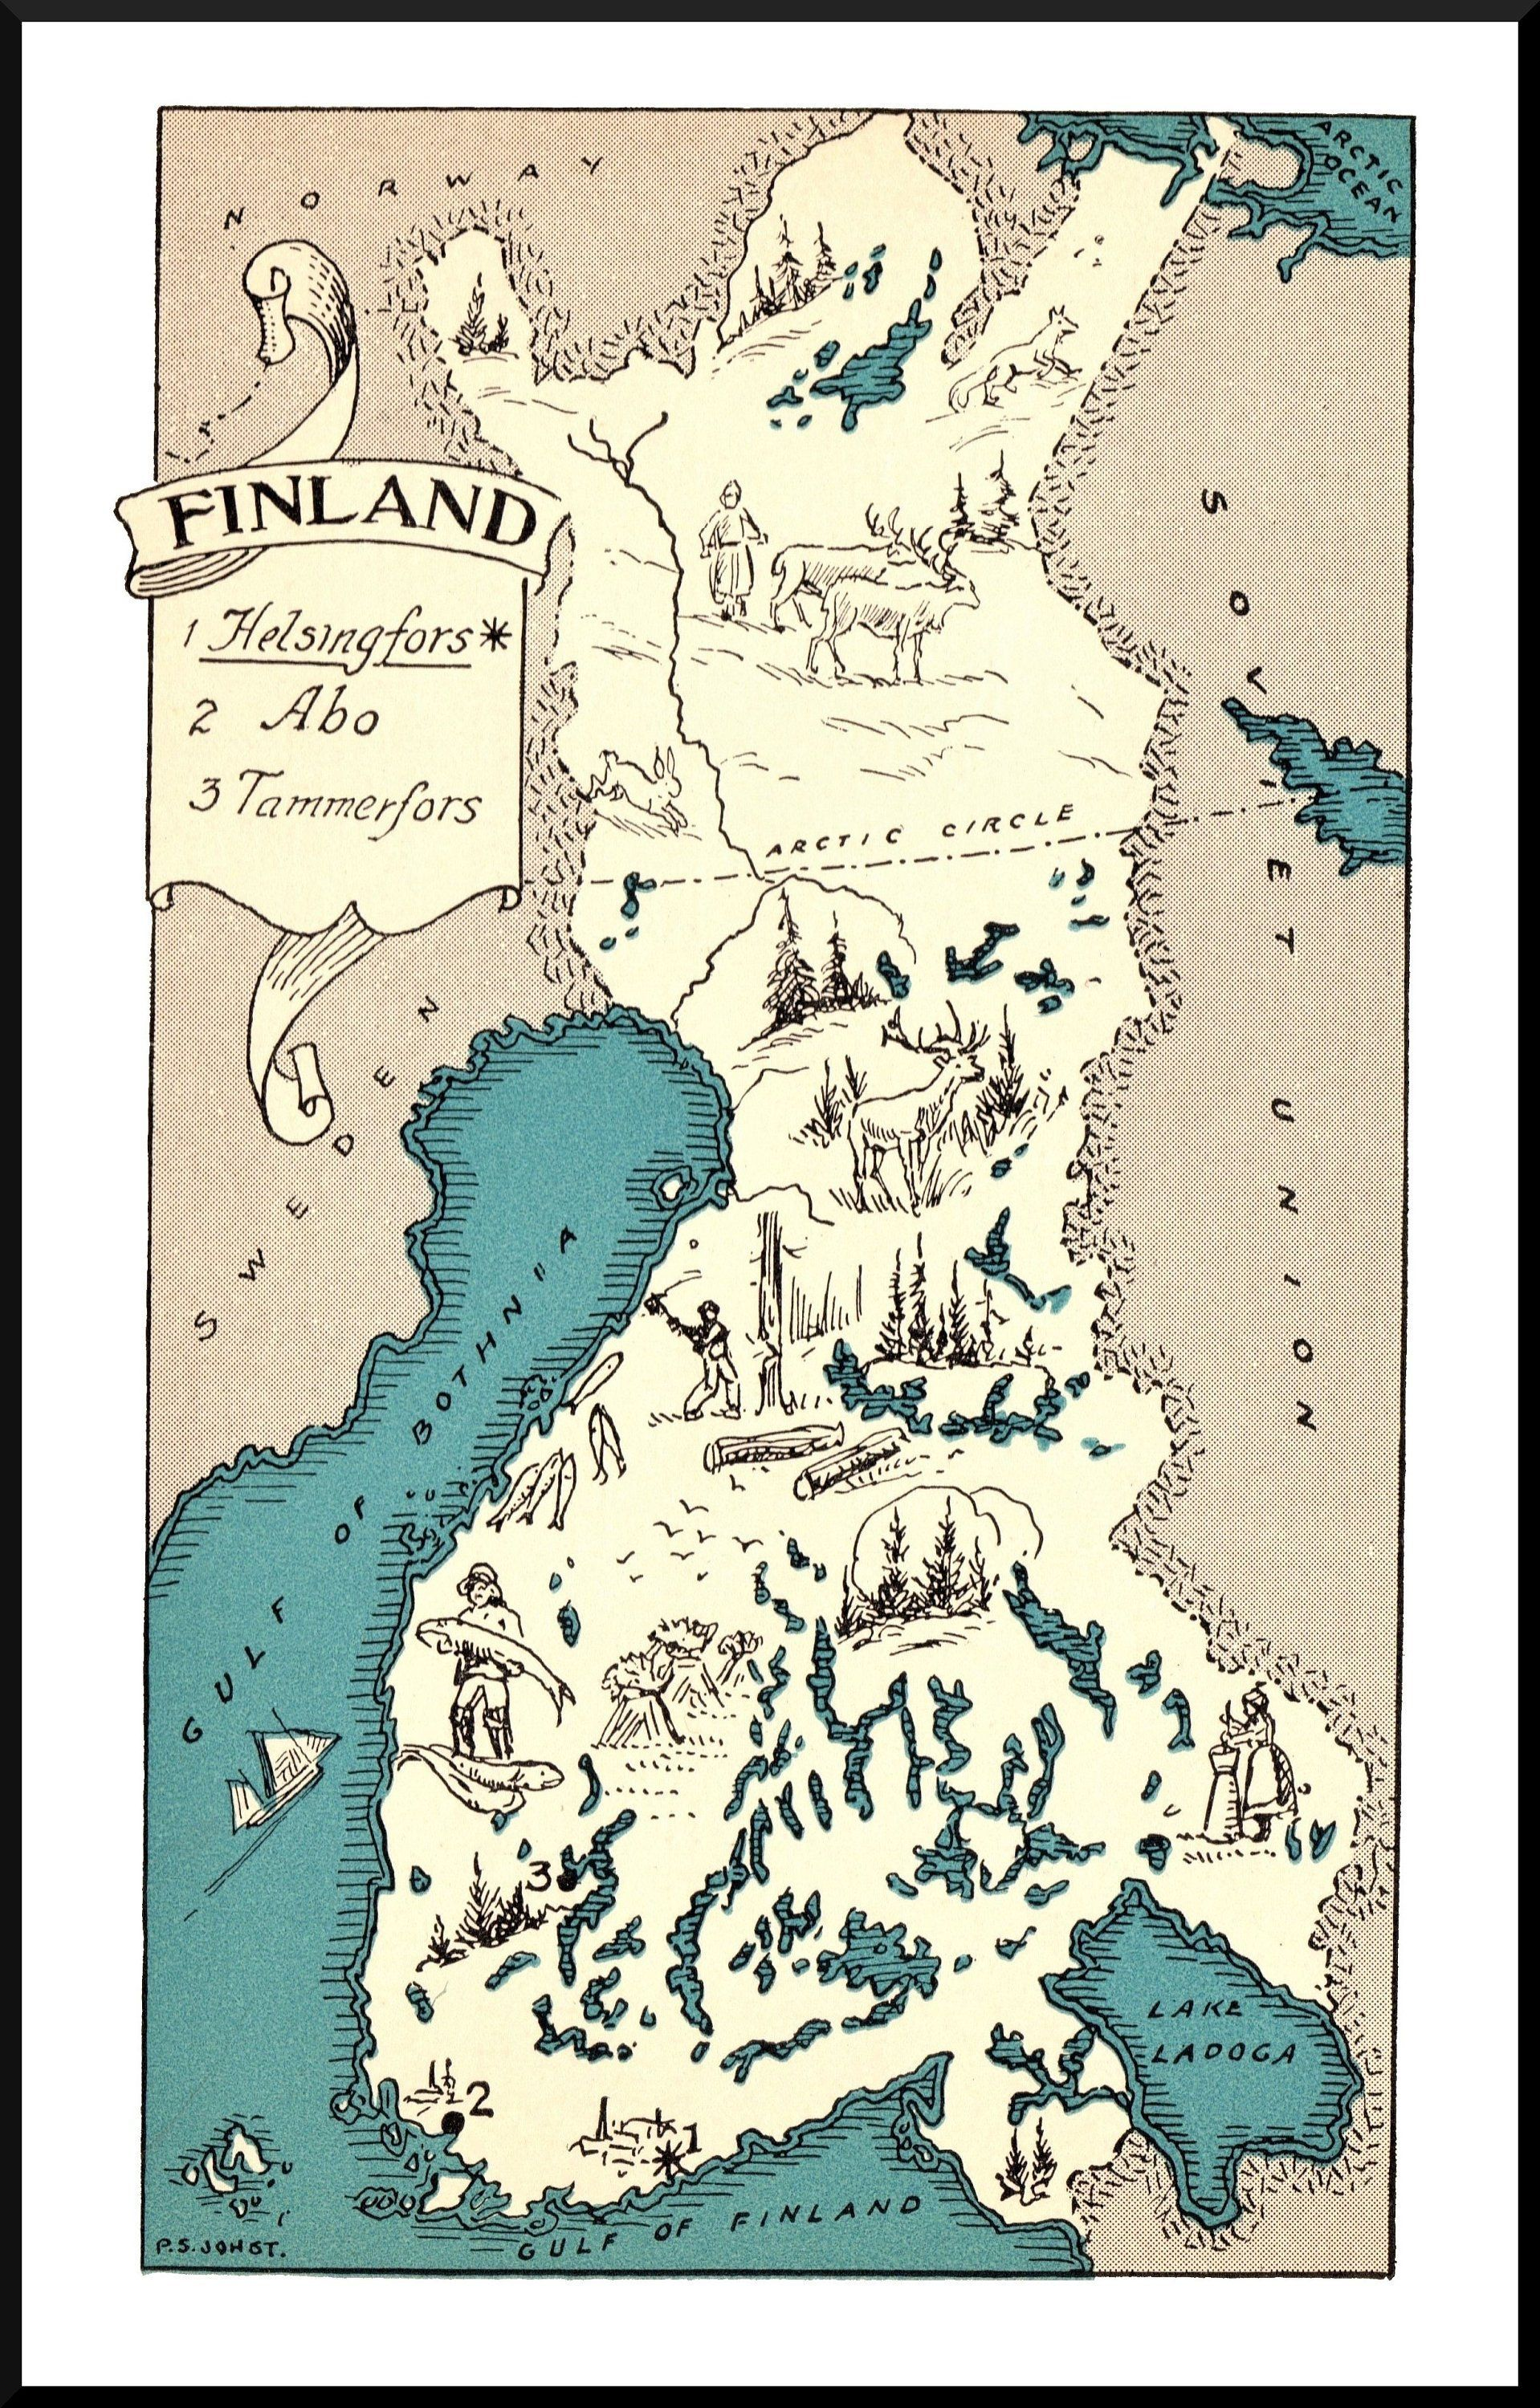 30 S Vintage Finland Picture Map Animated Rare Map Print Etsy In 2021 Map Print Art Map Art